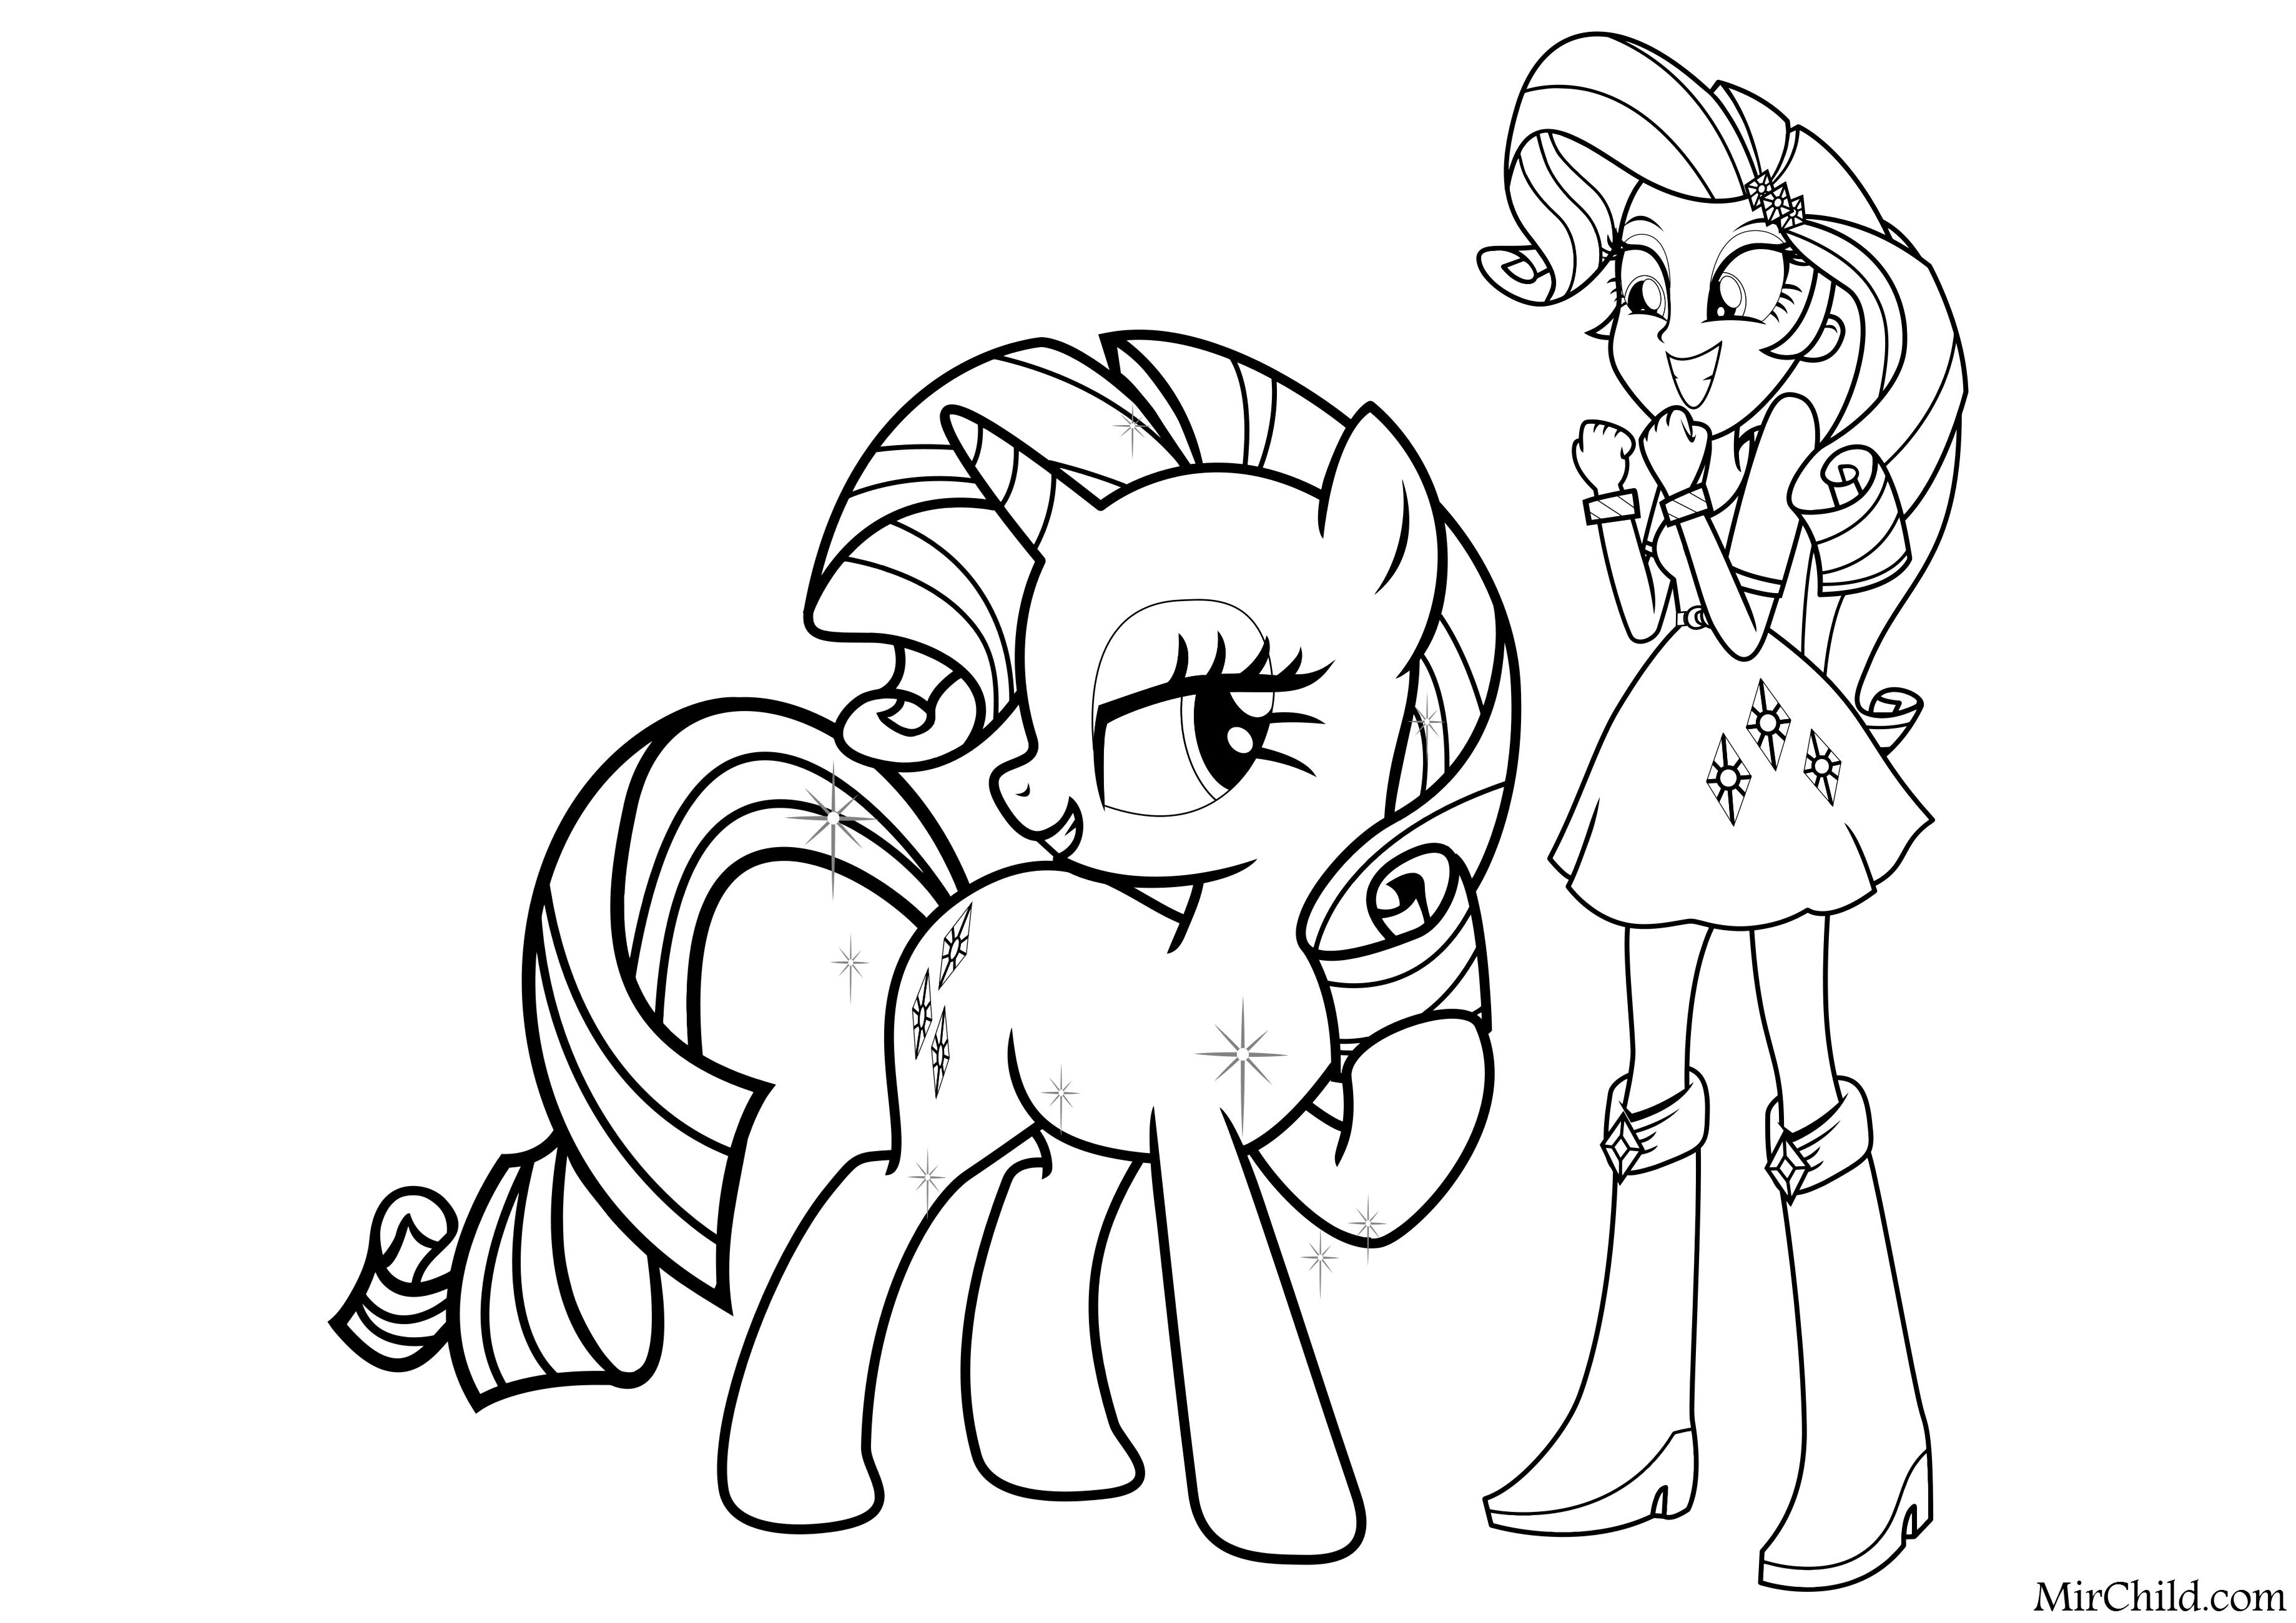 Pin By Hatice Kubra On Coloring My Little Pony Coloring My Little Pony Printable Cute Coloring Pages